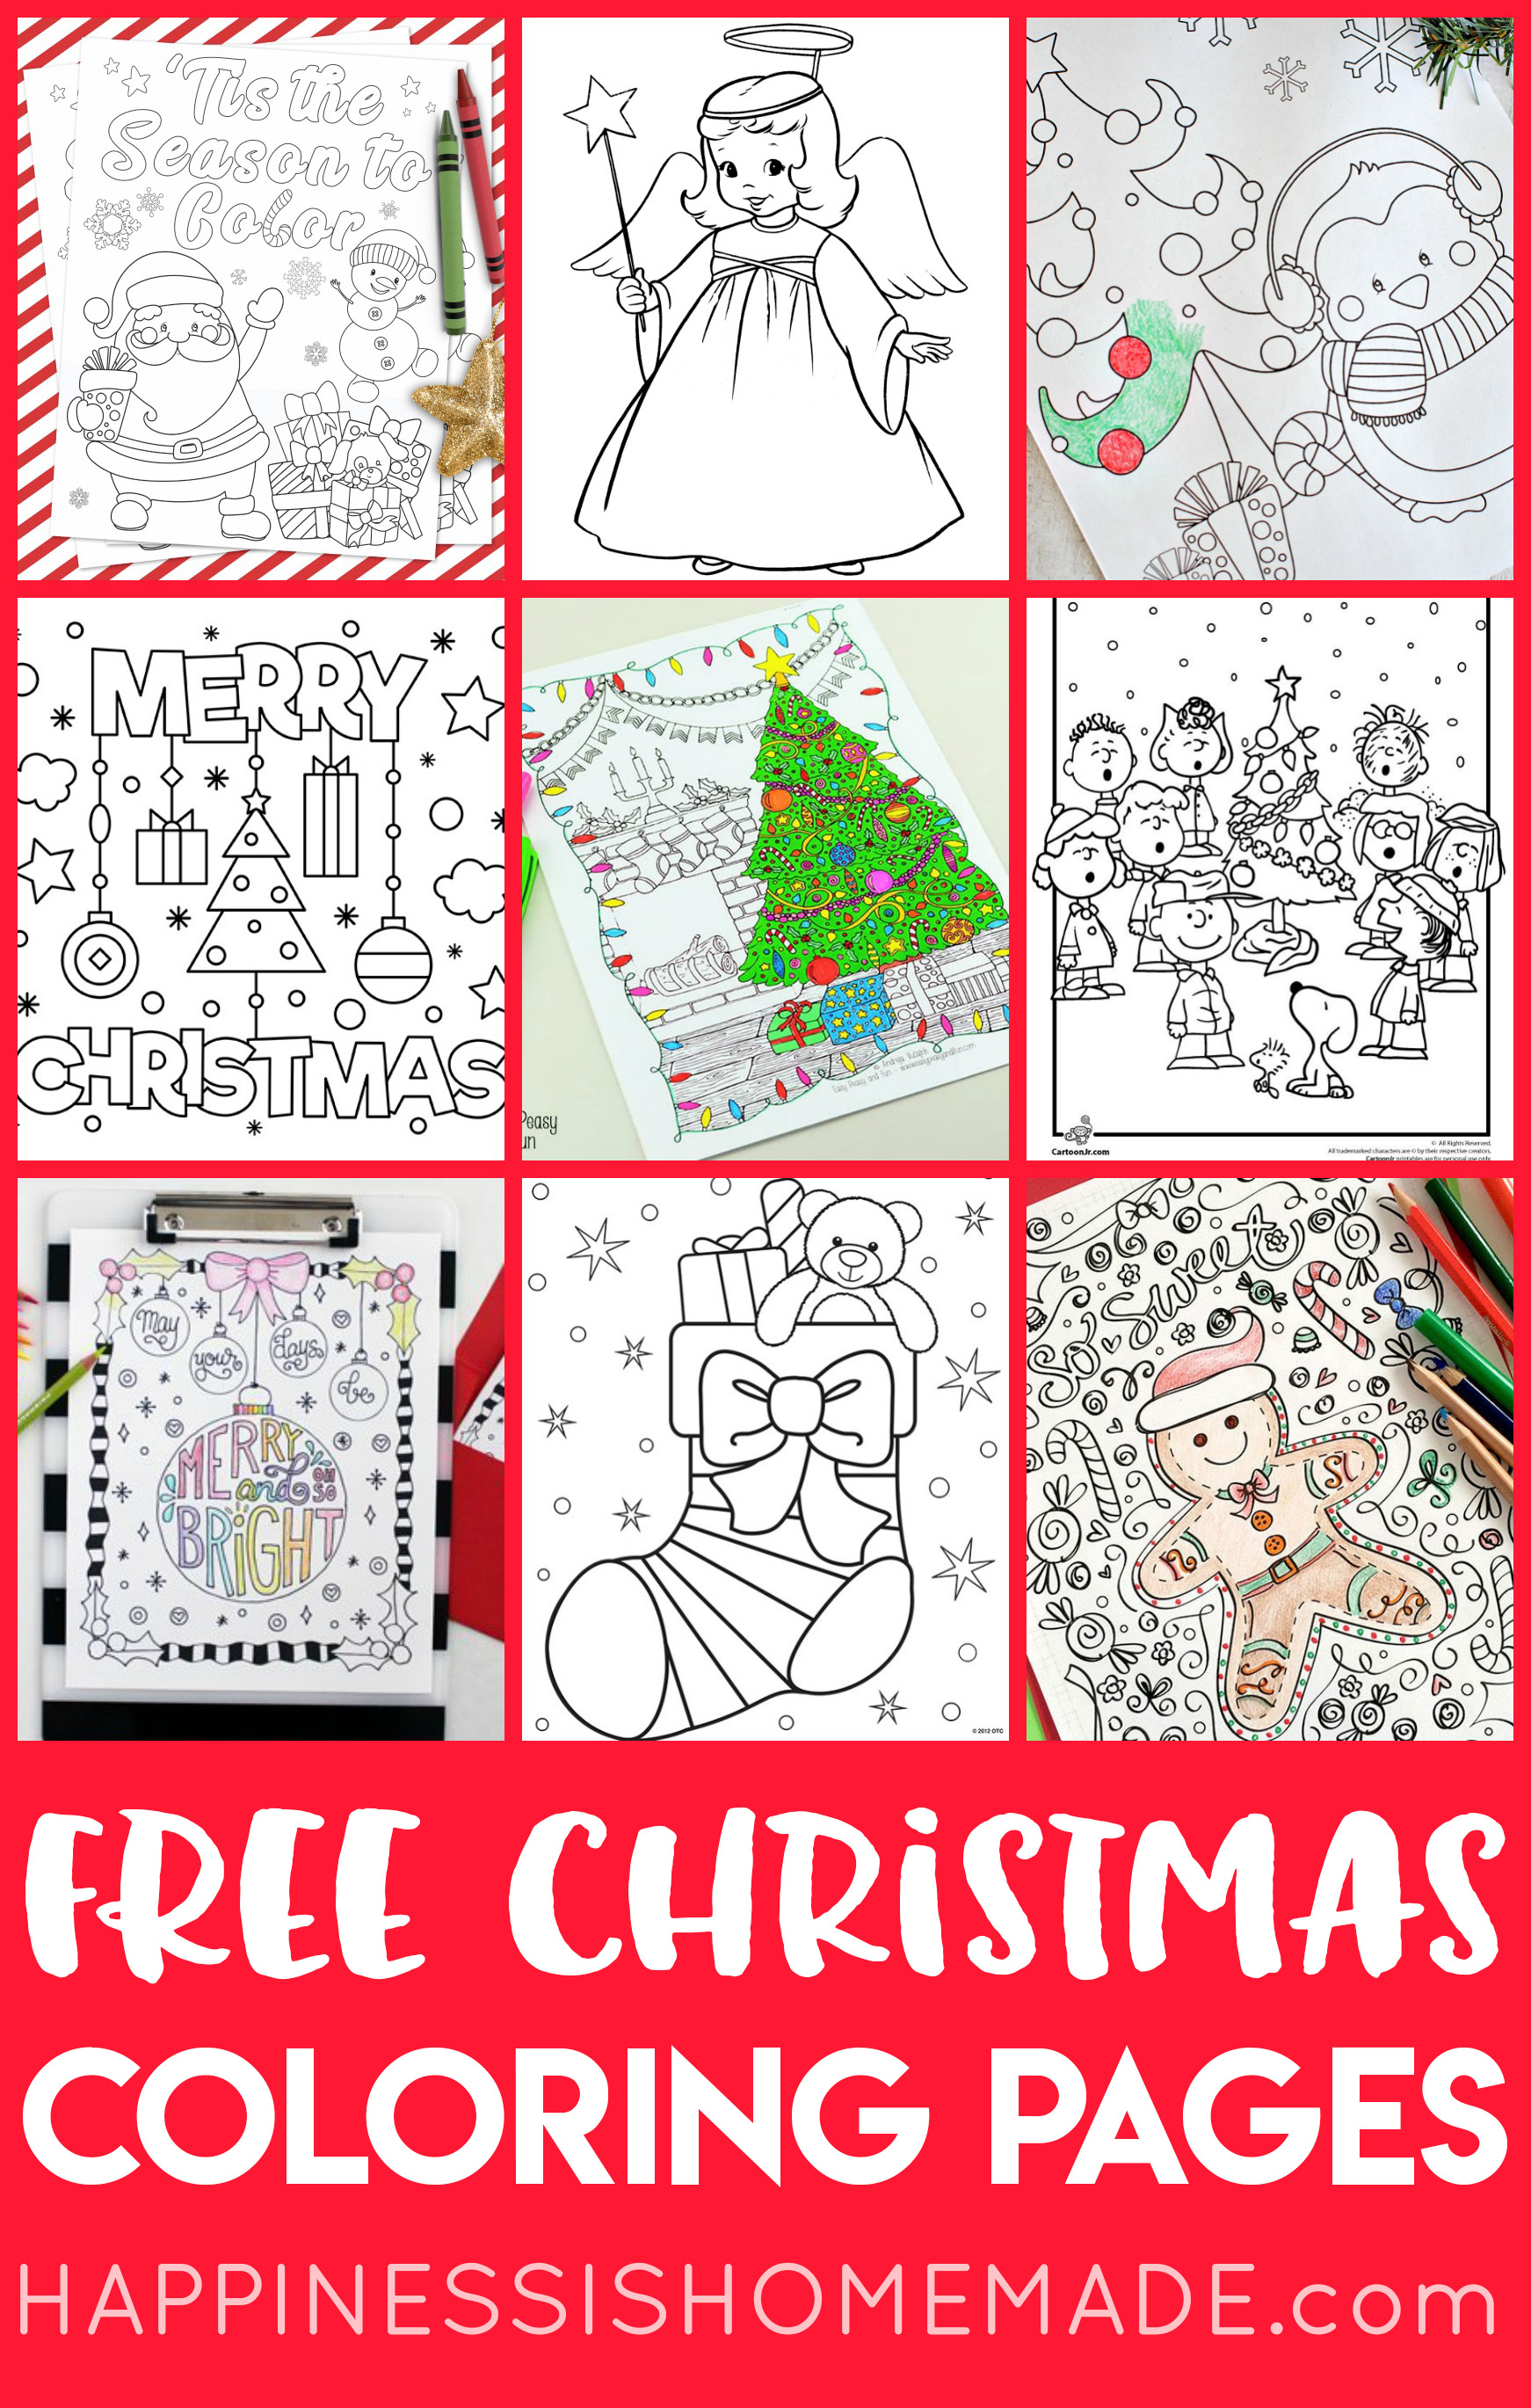 image regarding Free Printable Activities for Dementia Patients named Cost-free Xmas Coloring Web pages for Grown ups and Young children